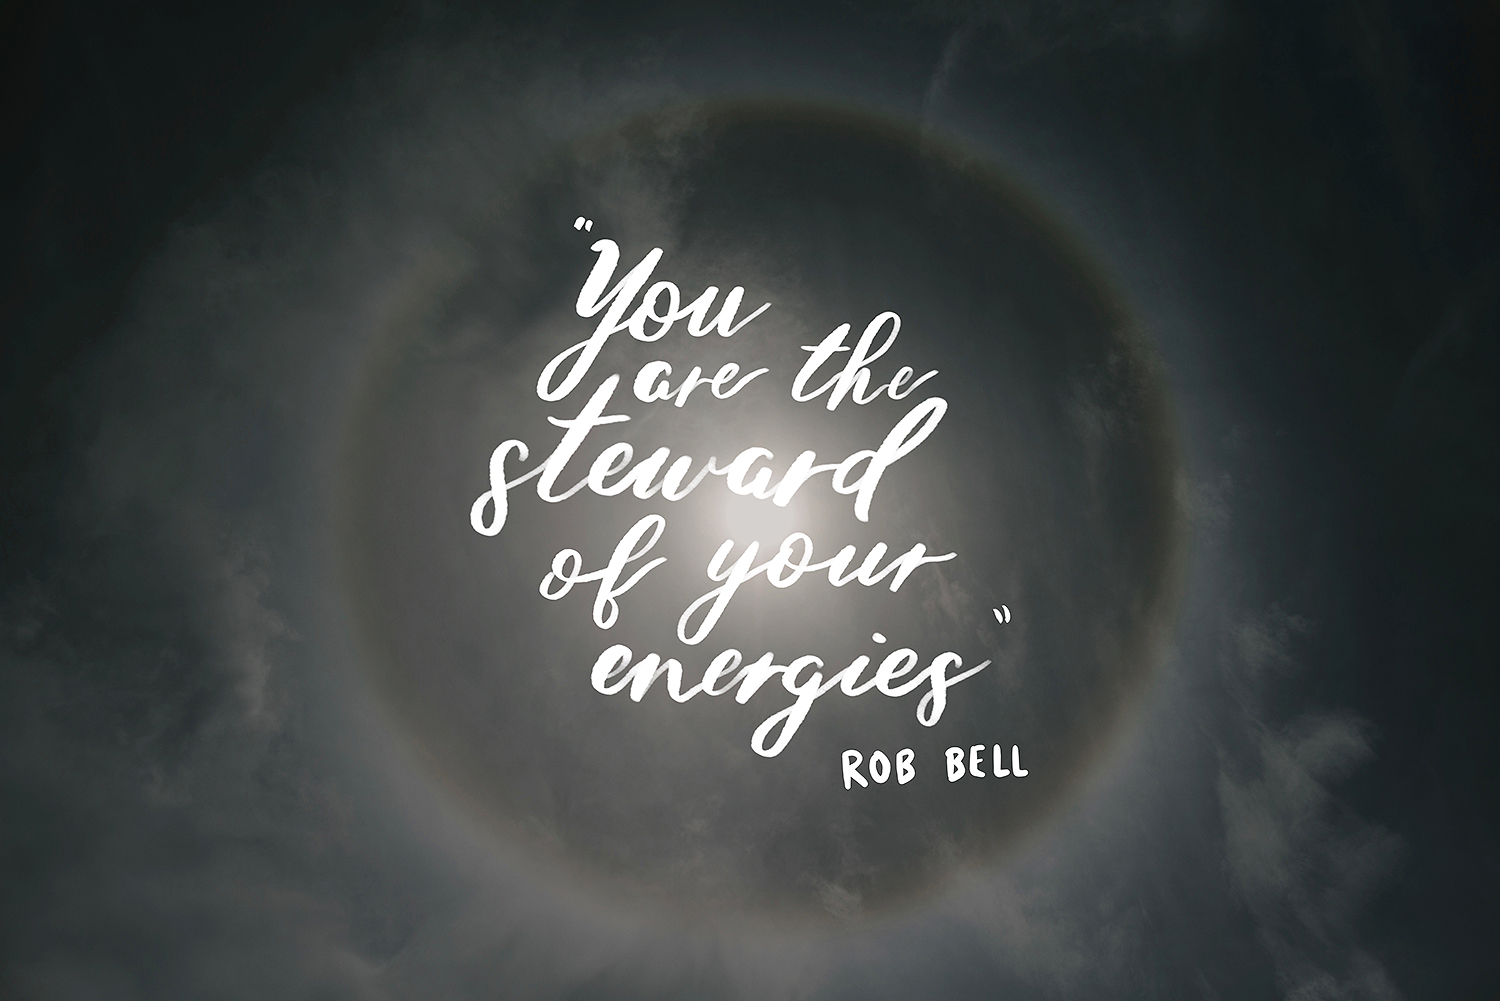 rob bell energy steward quote hand lettered